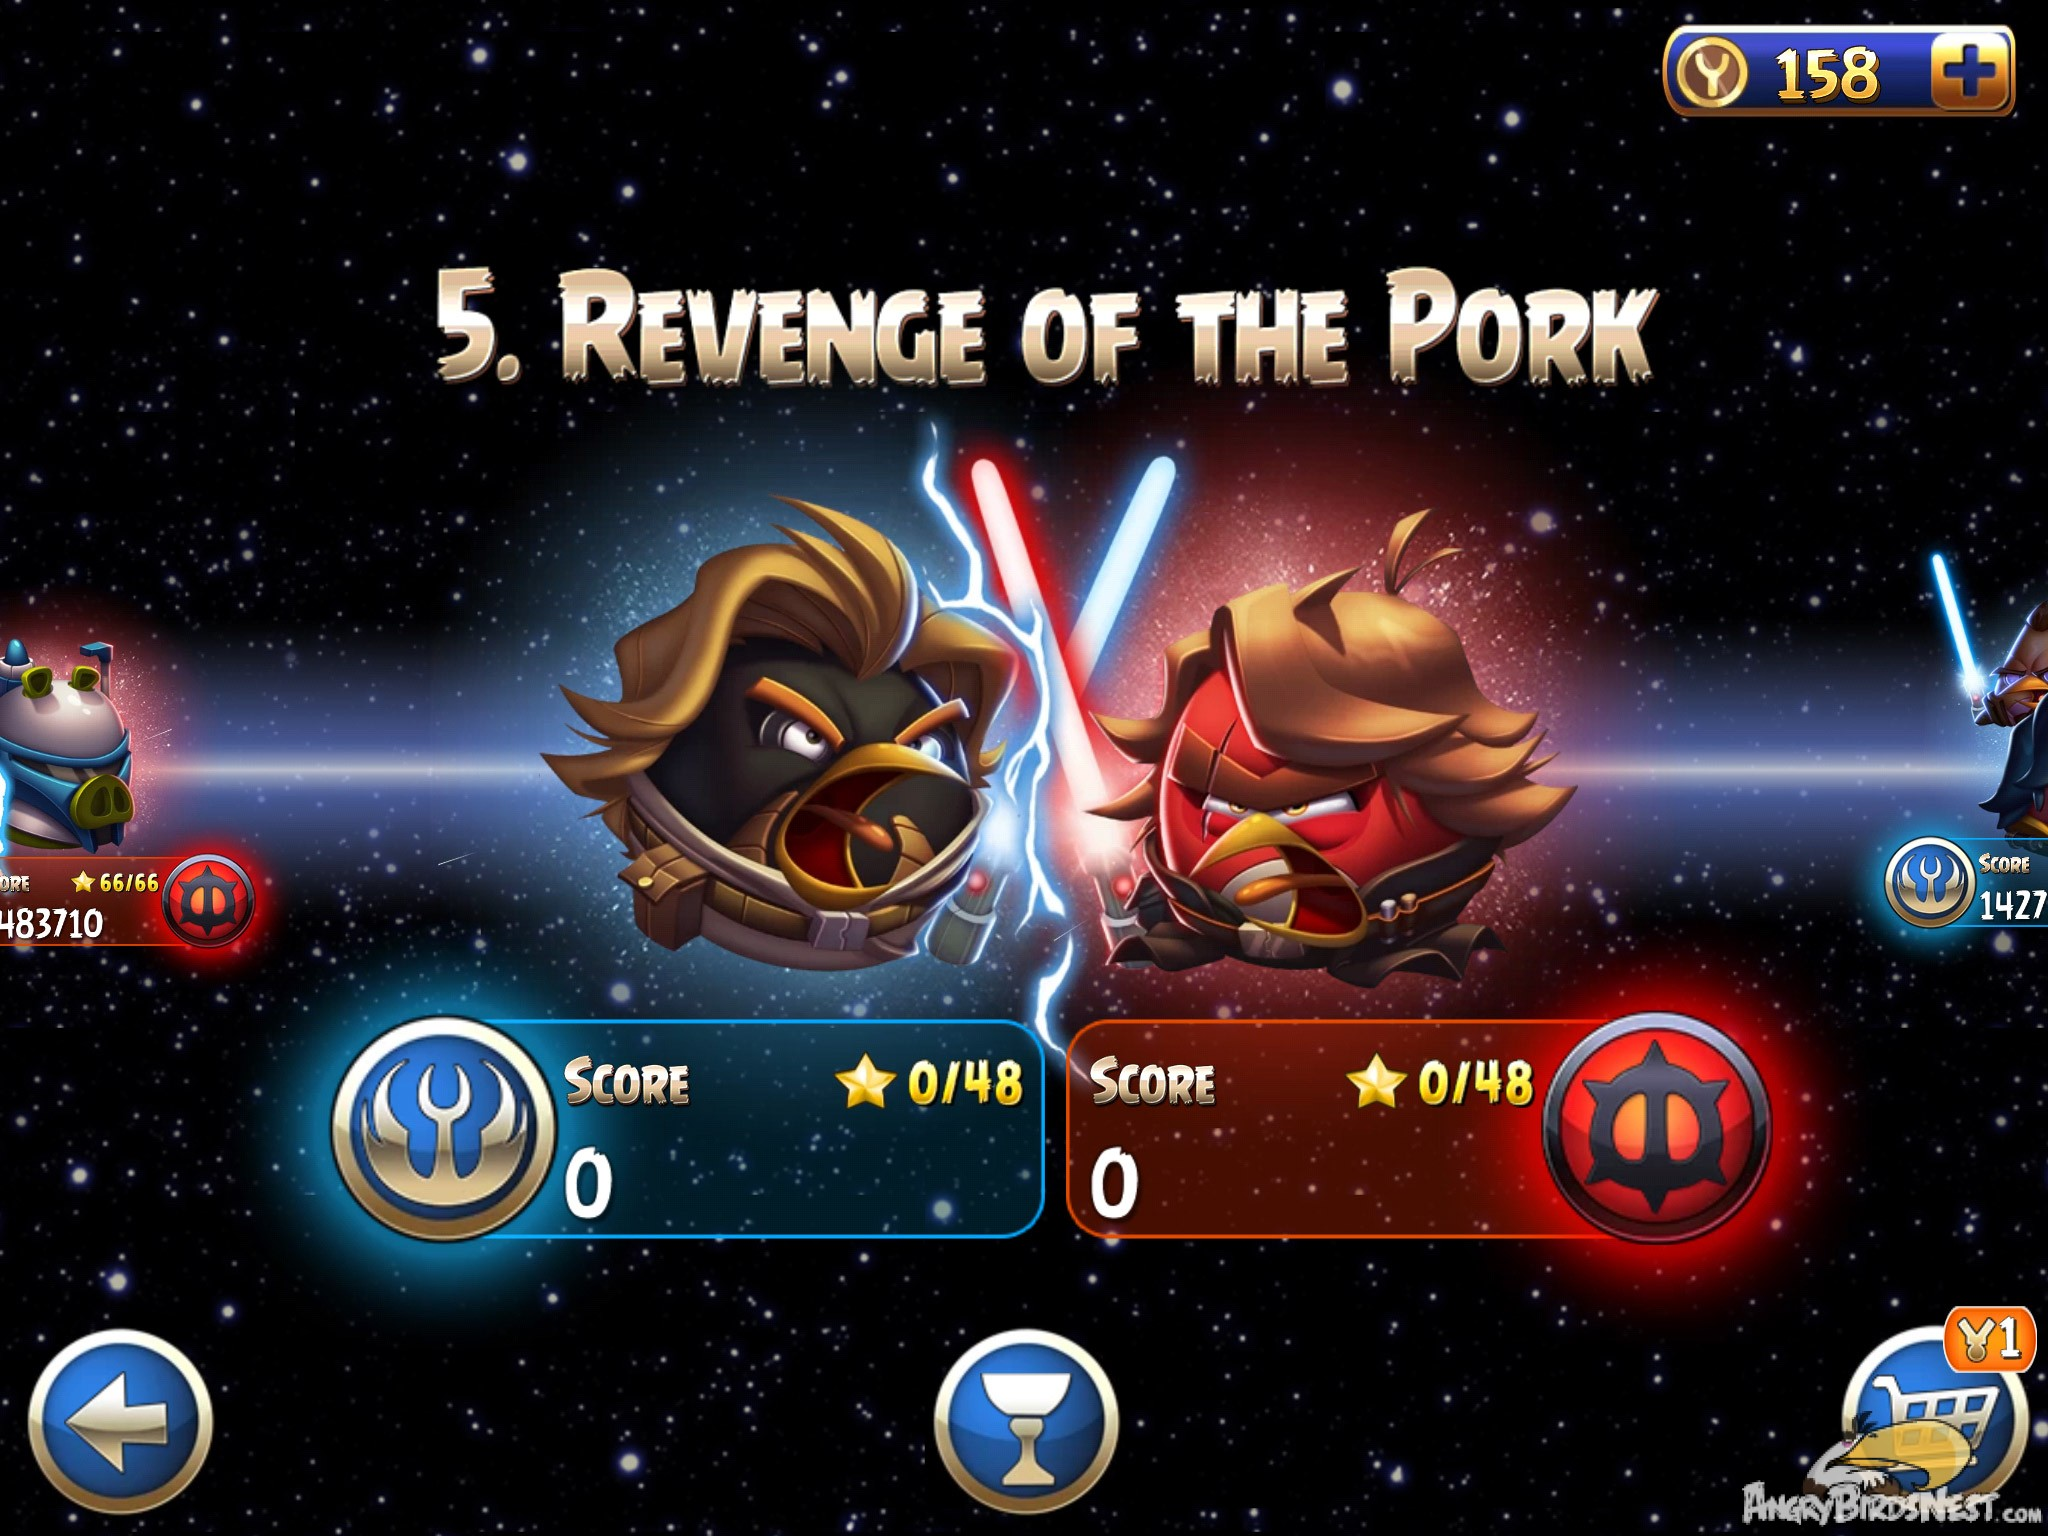 Angry birds star wars 2 rebels episode selection screen.